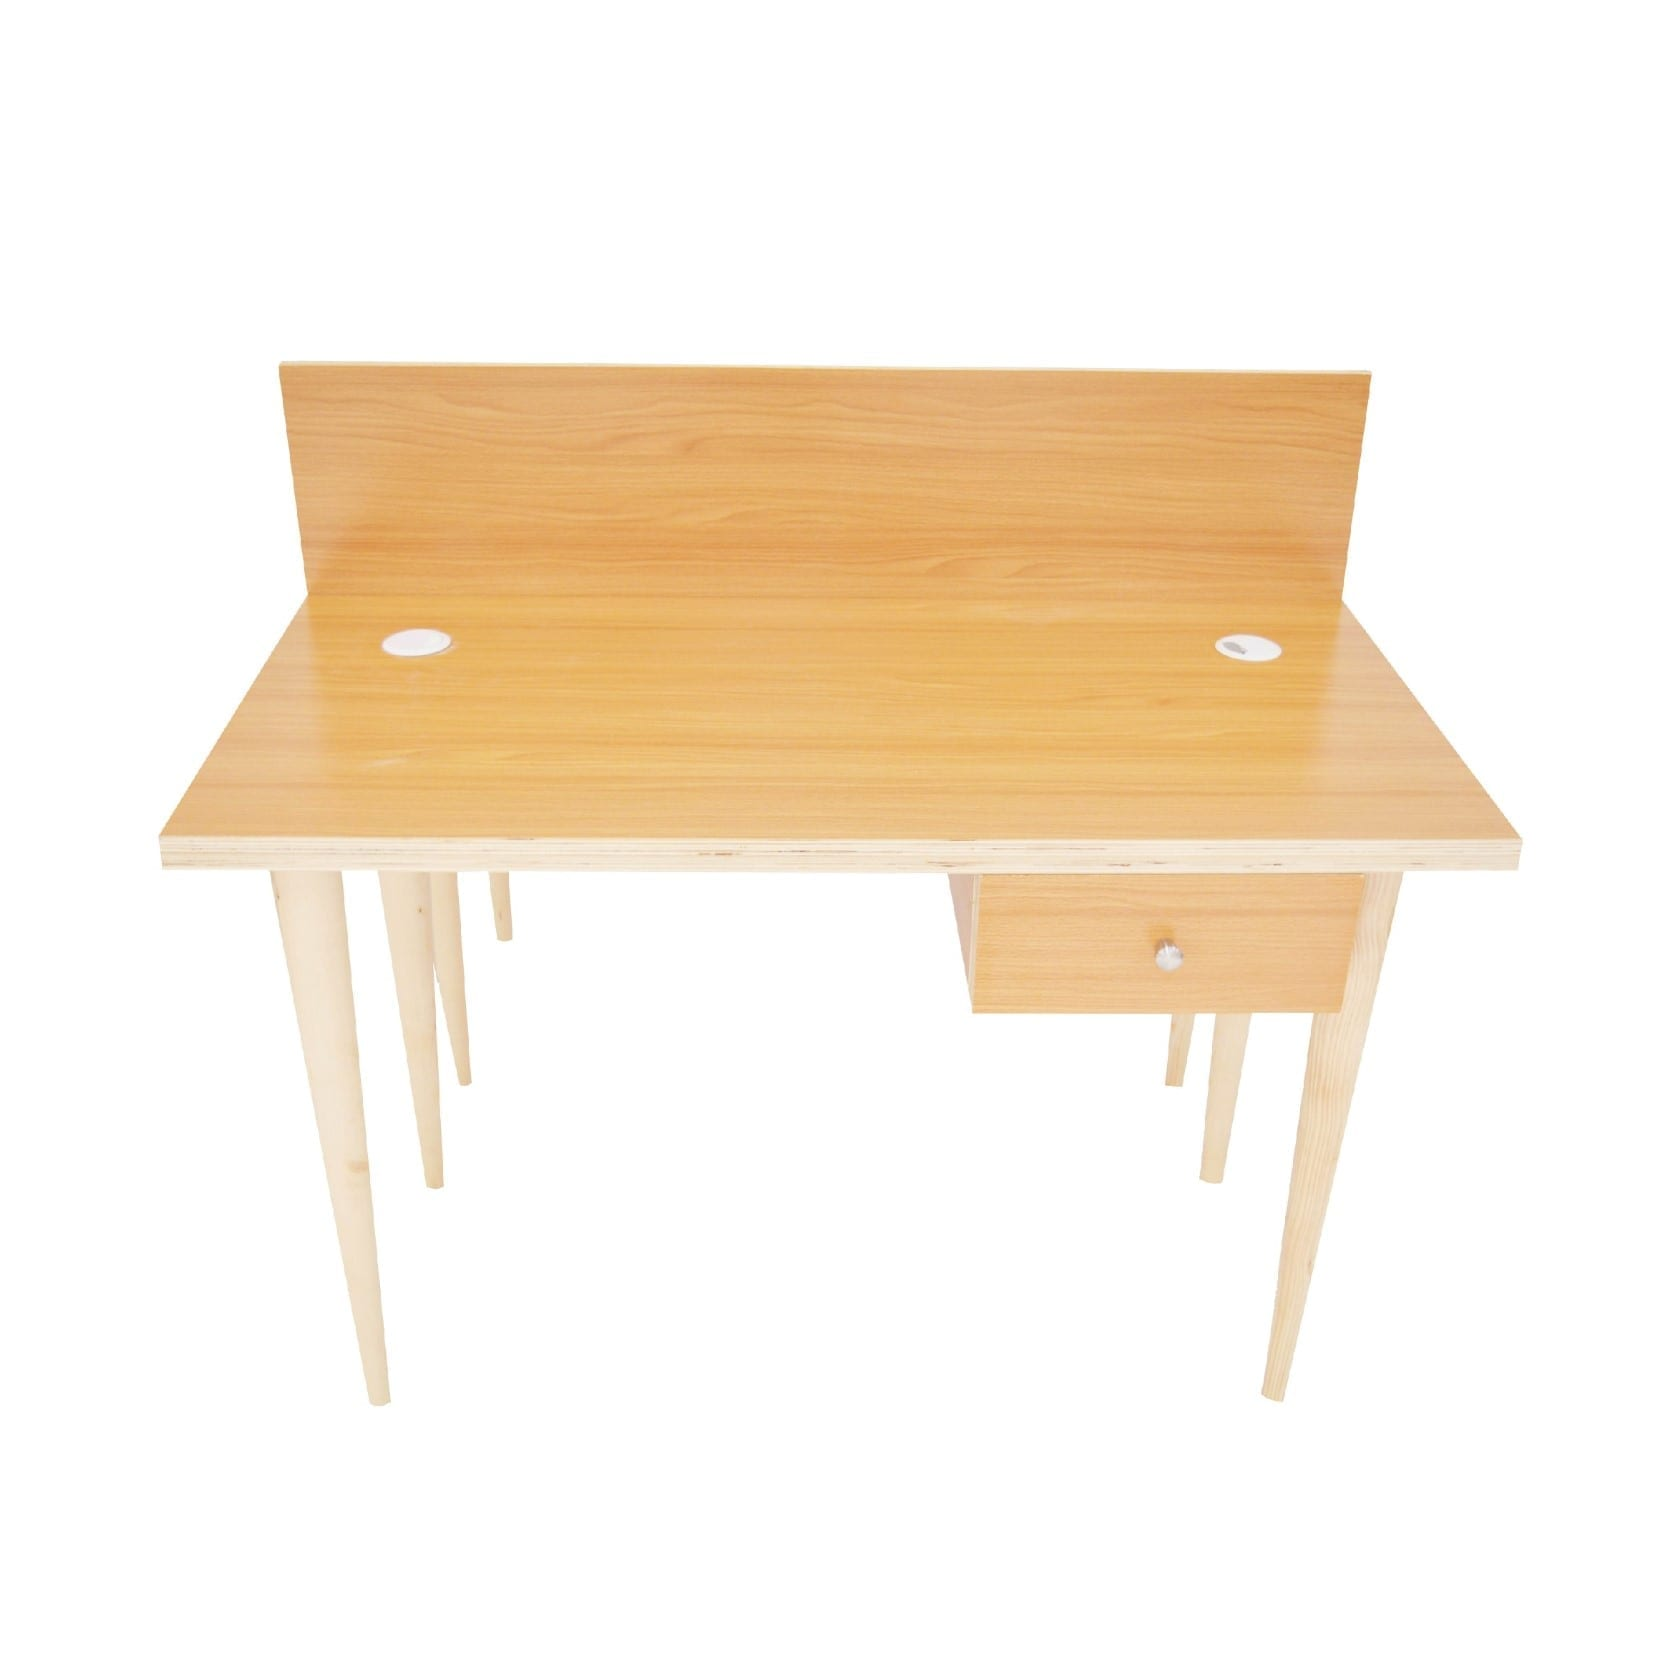 Wooden Legs Elegant Design Create Your Own Workstation By Adding A Single Drawer Double Drawers Or Mobile And Desk Partitions As Well You Can